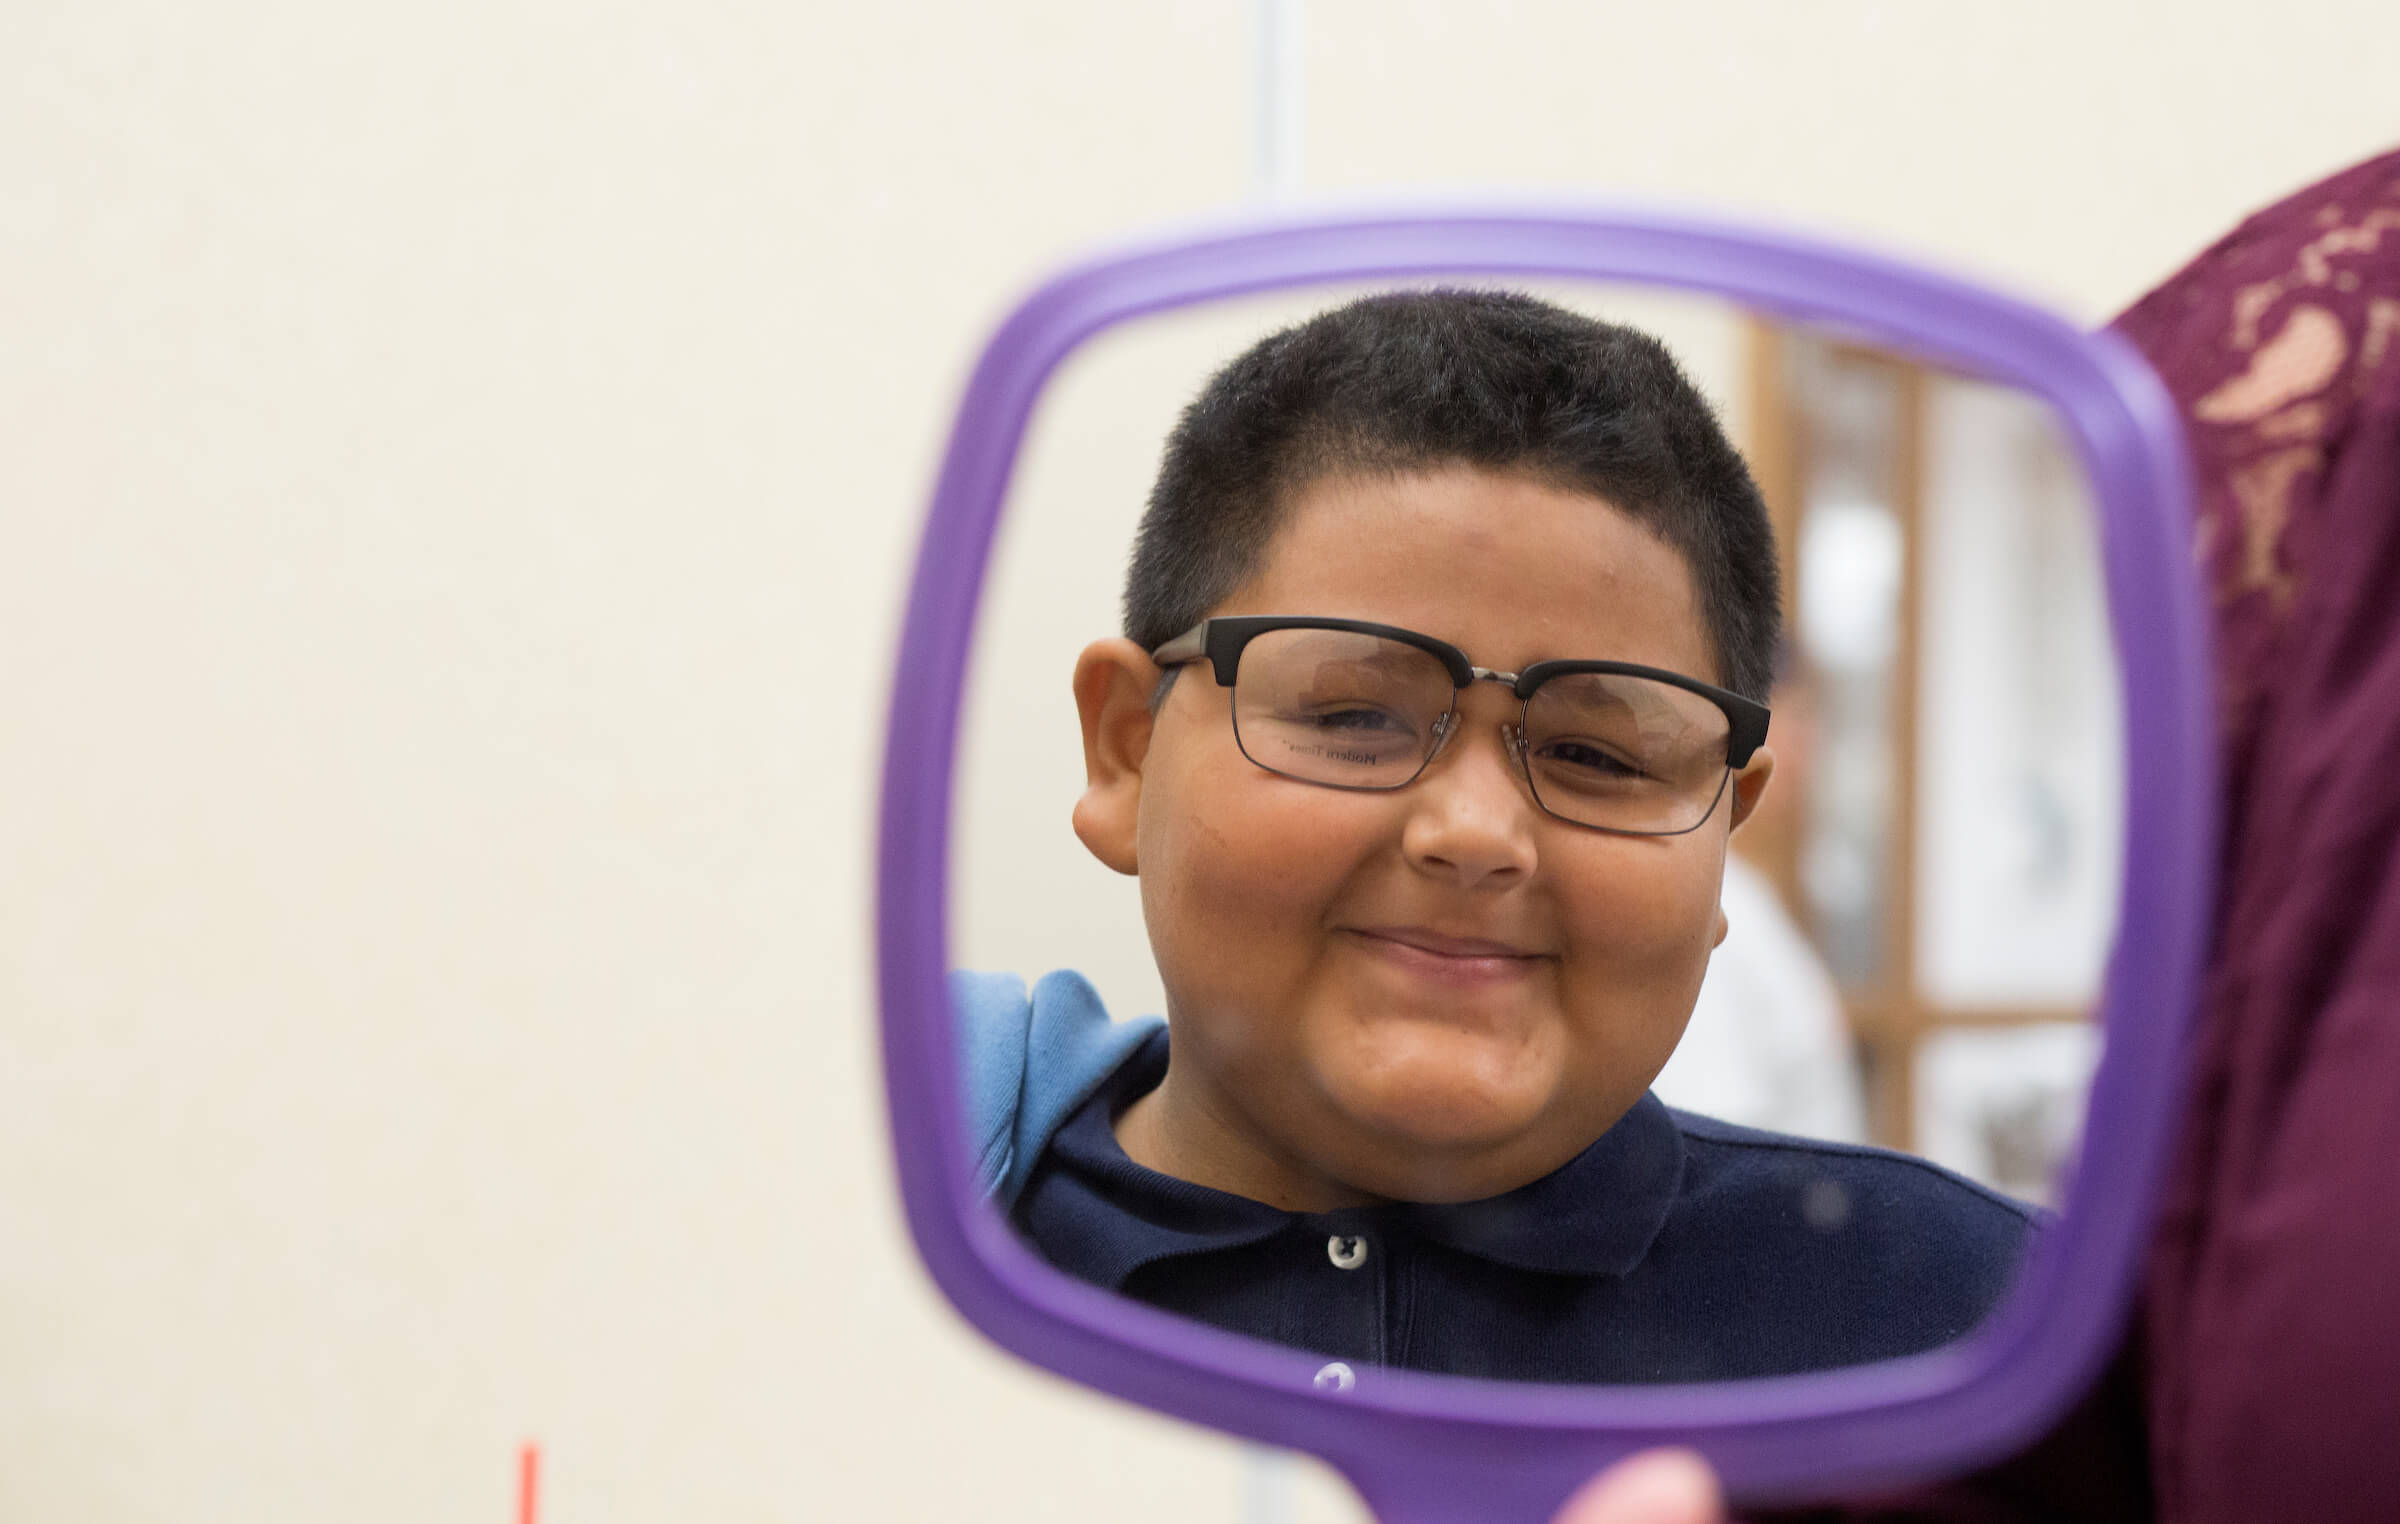 Francisco Perez tries on a pair of glasses during a